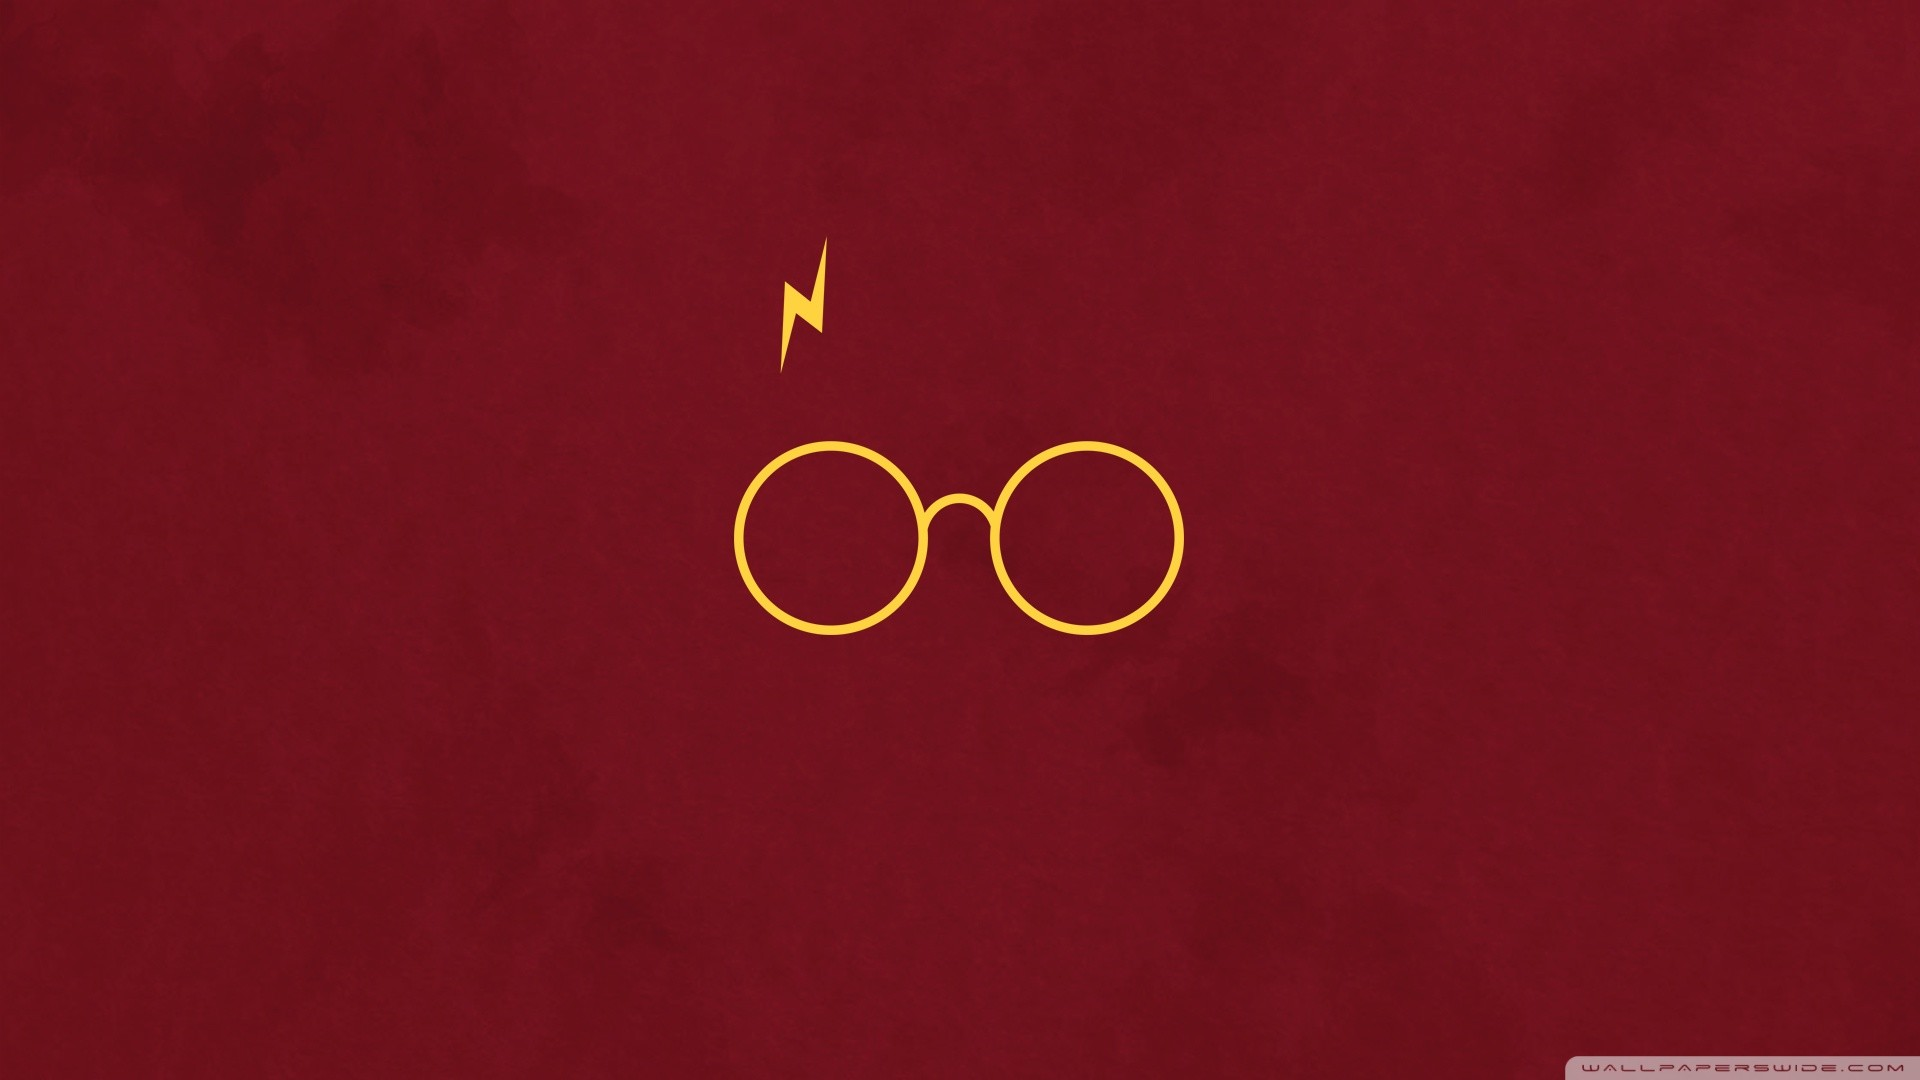 Harry Potter Wallpaper For Desktop (72+ Images